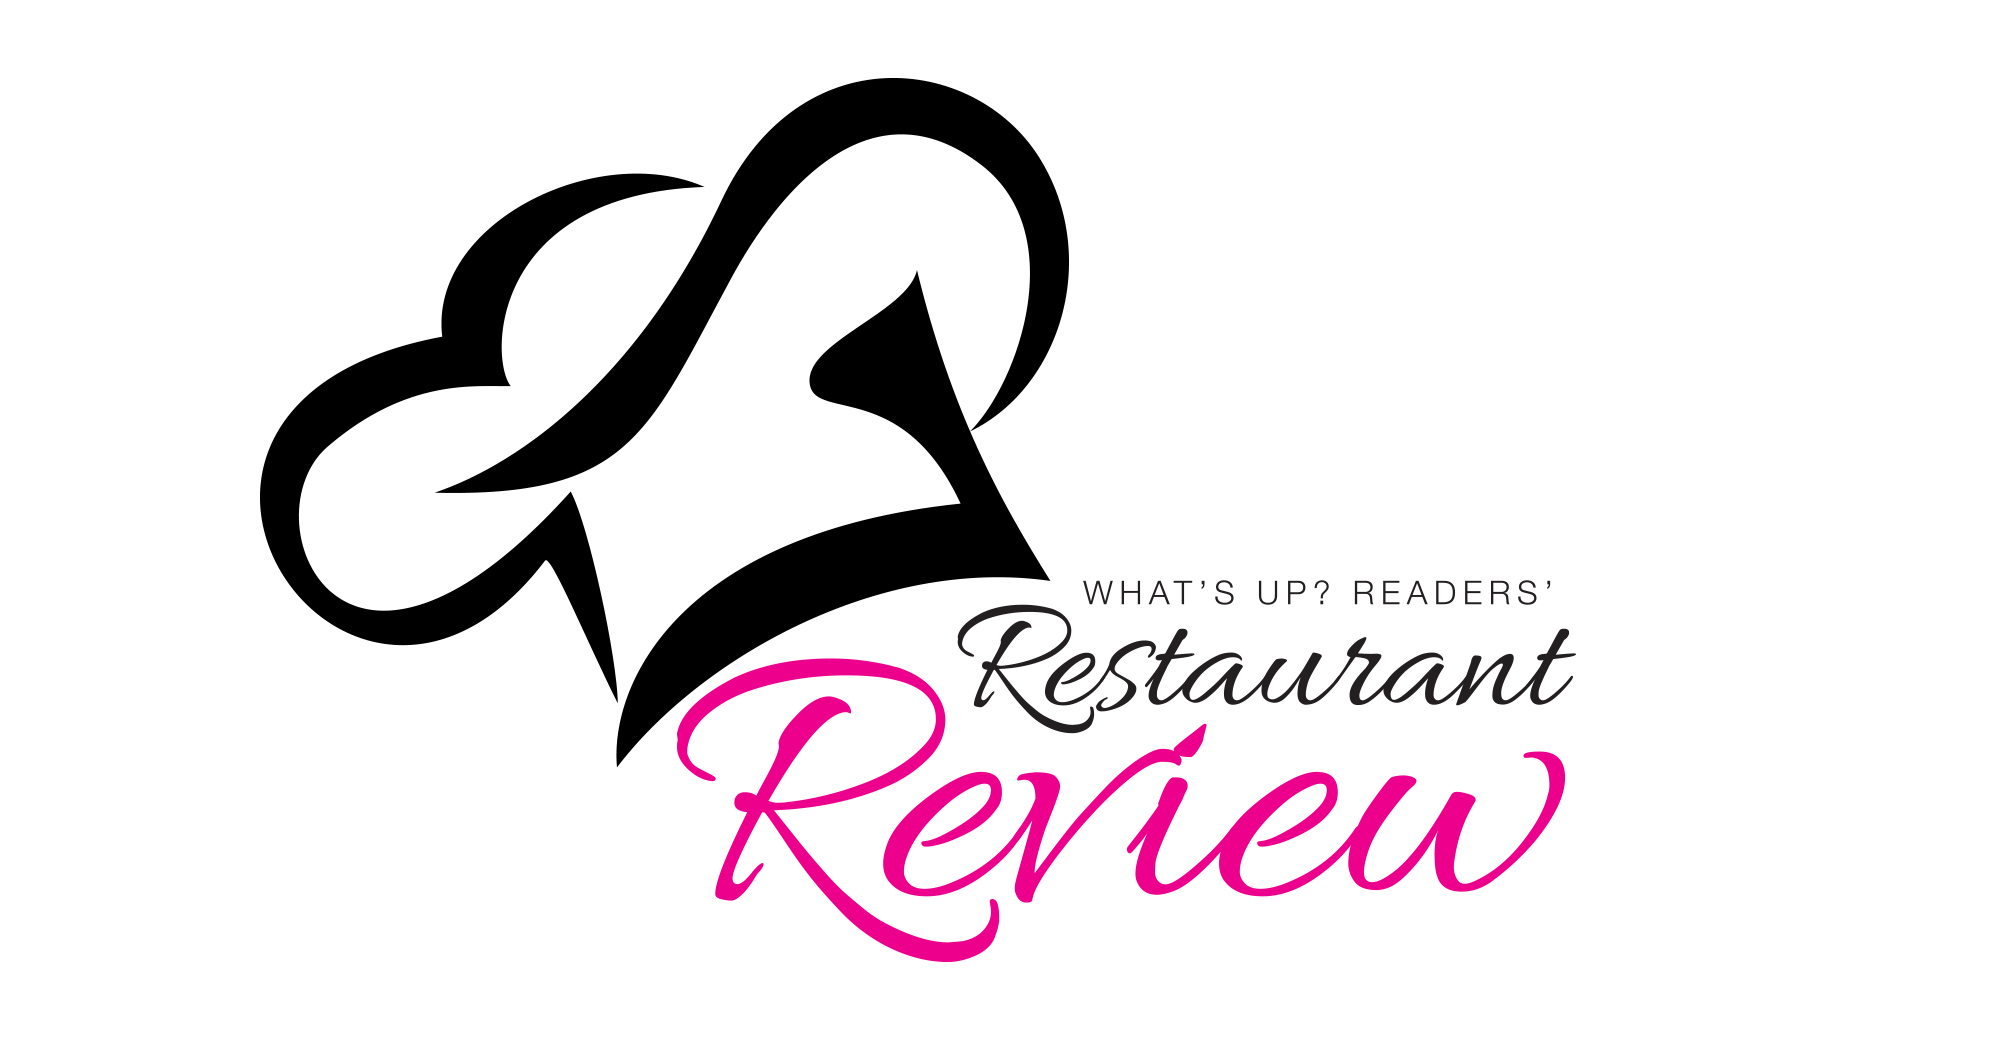 Restaurant clipart restaurant review. What s up readers